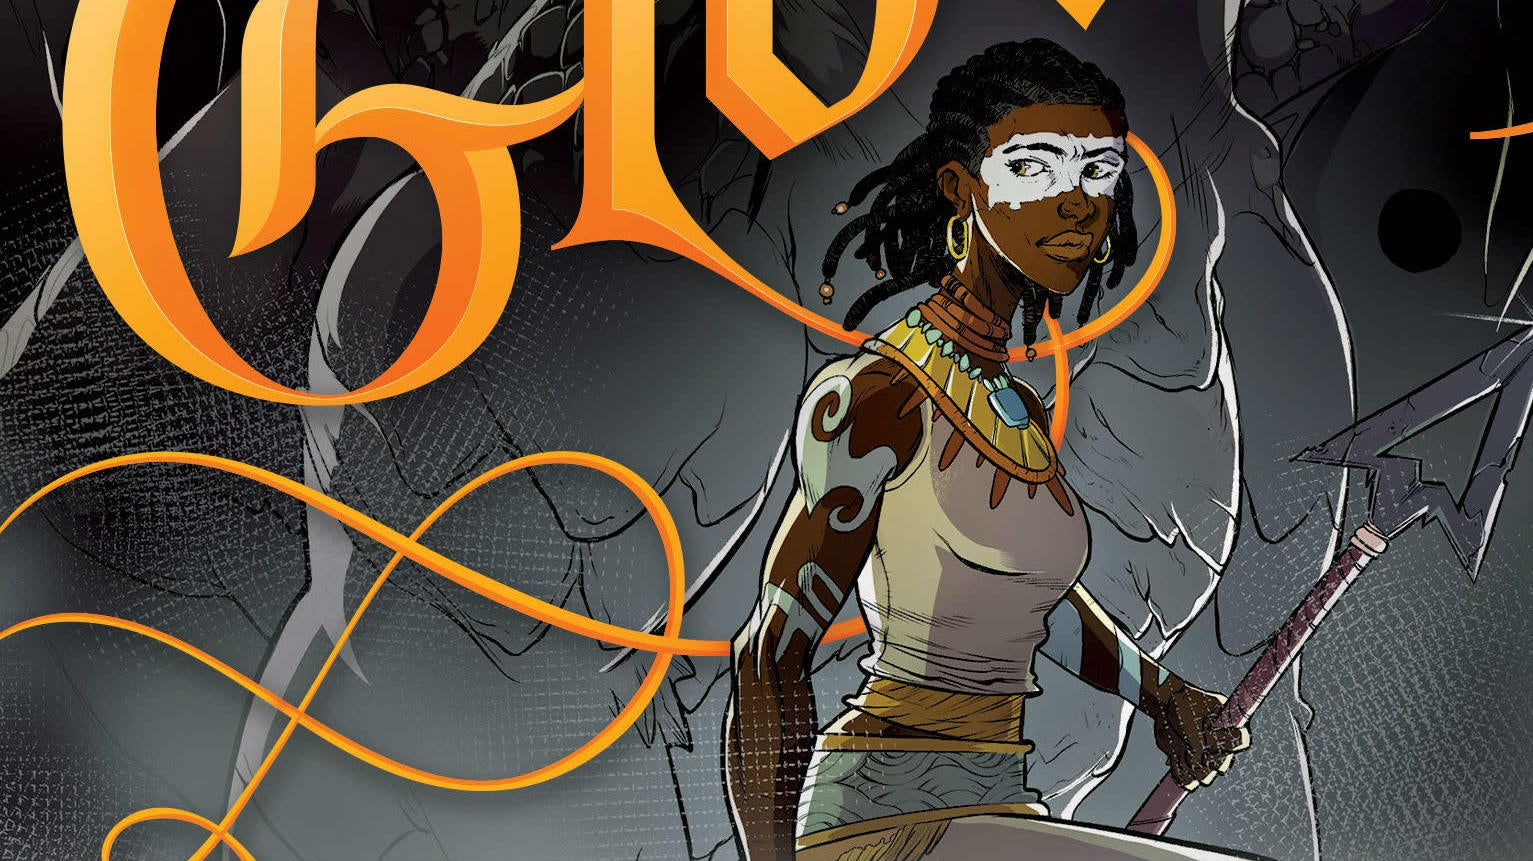 A Young Warrior Tests Her Powers In This Excerpt From Afrofuturistic Fantasy Given